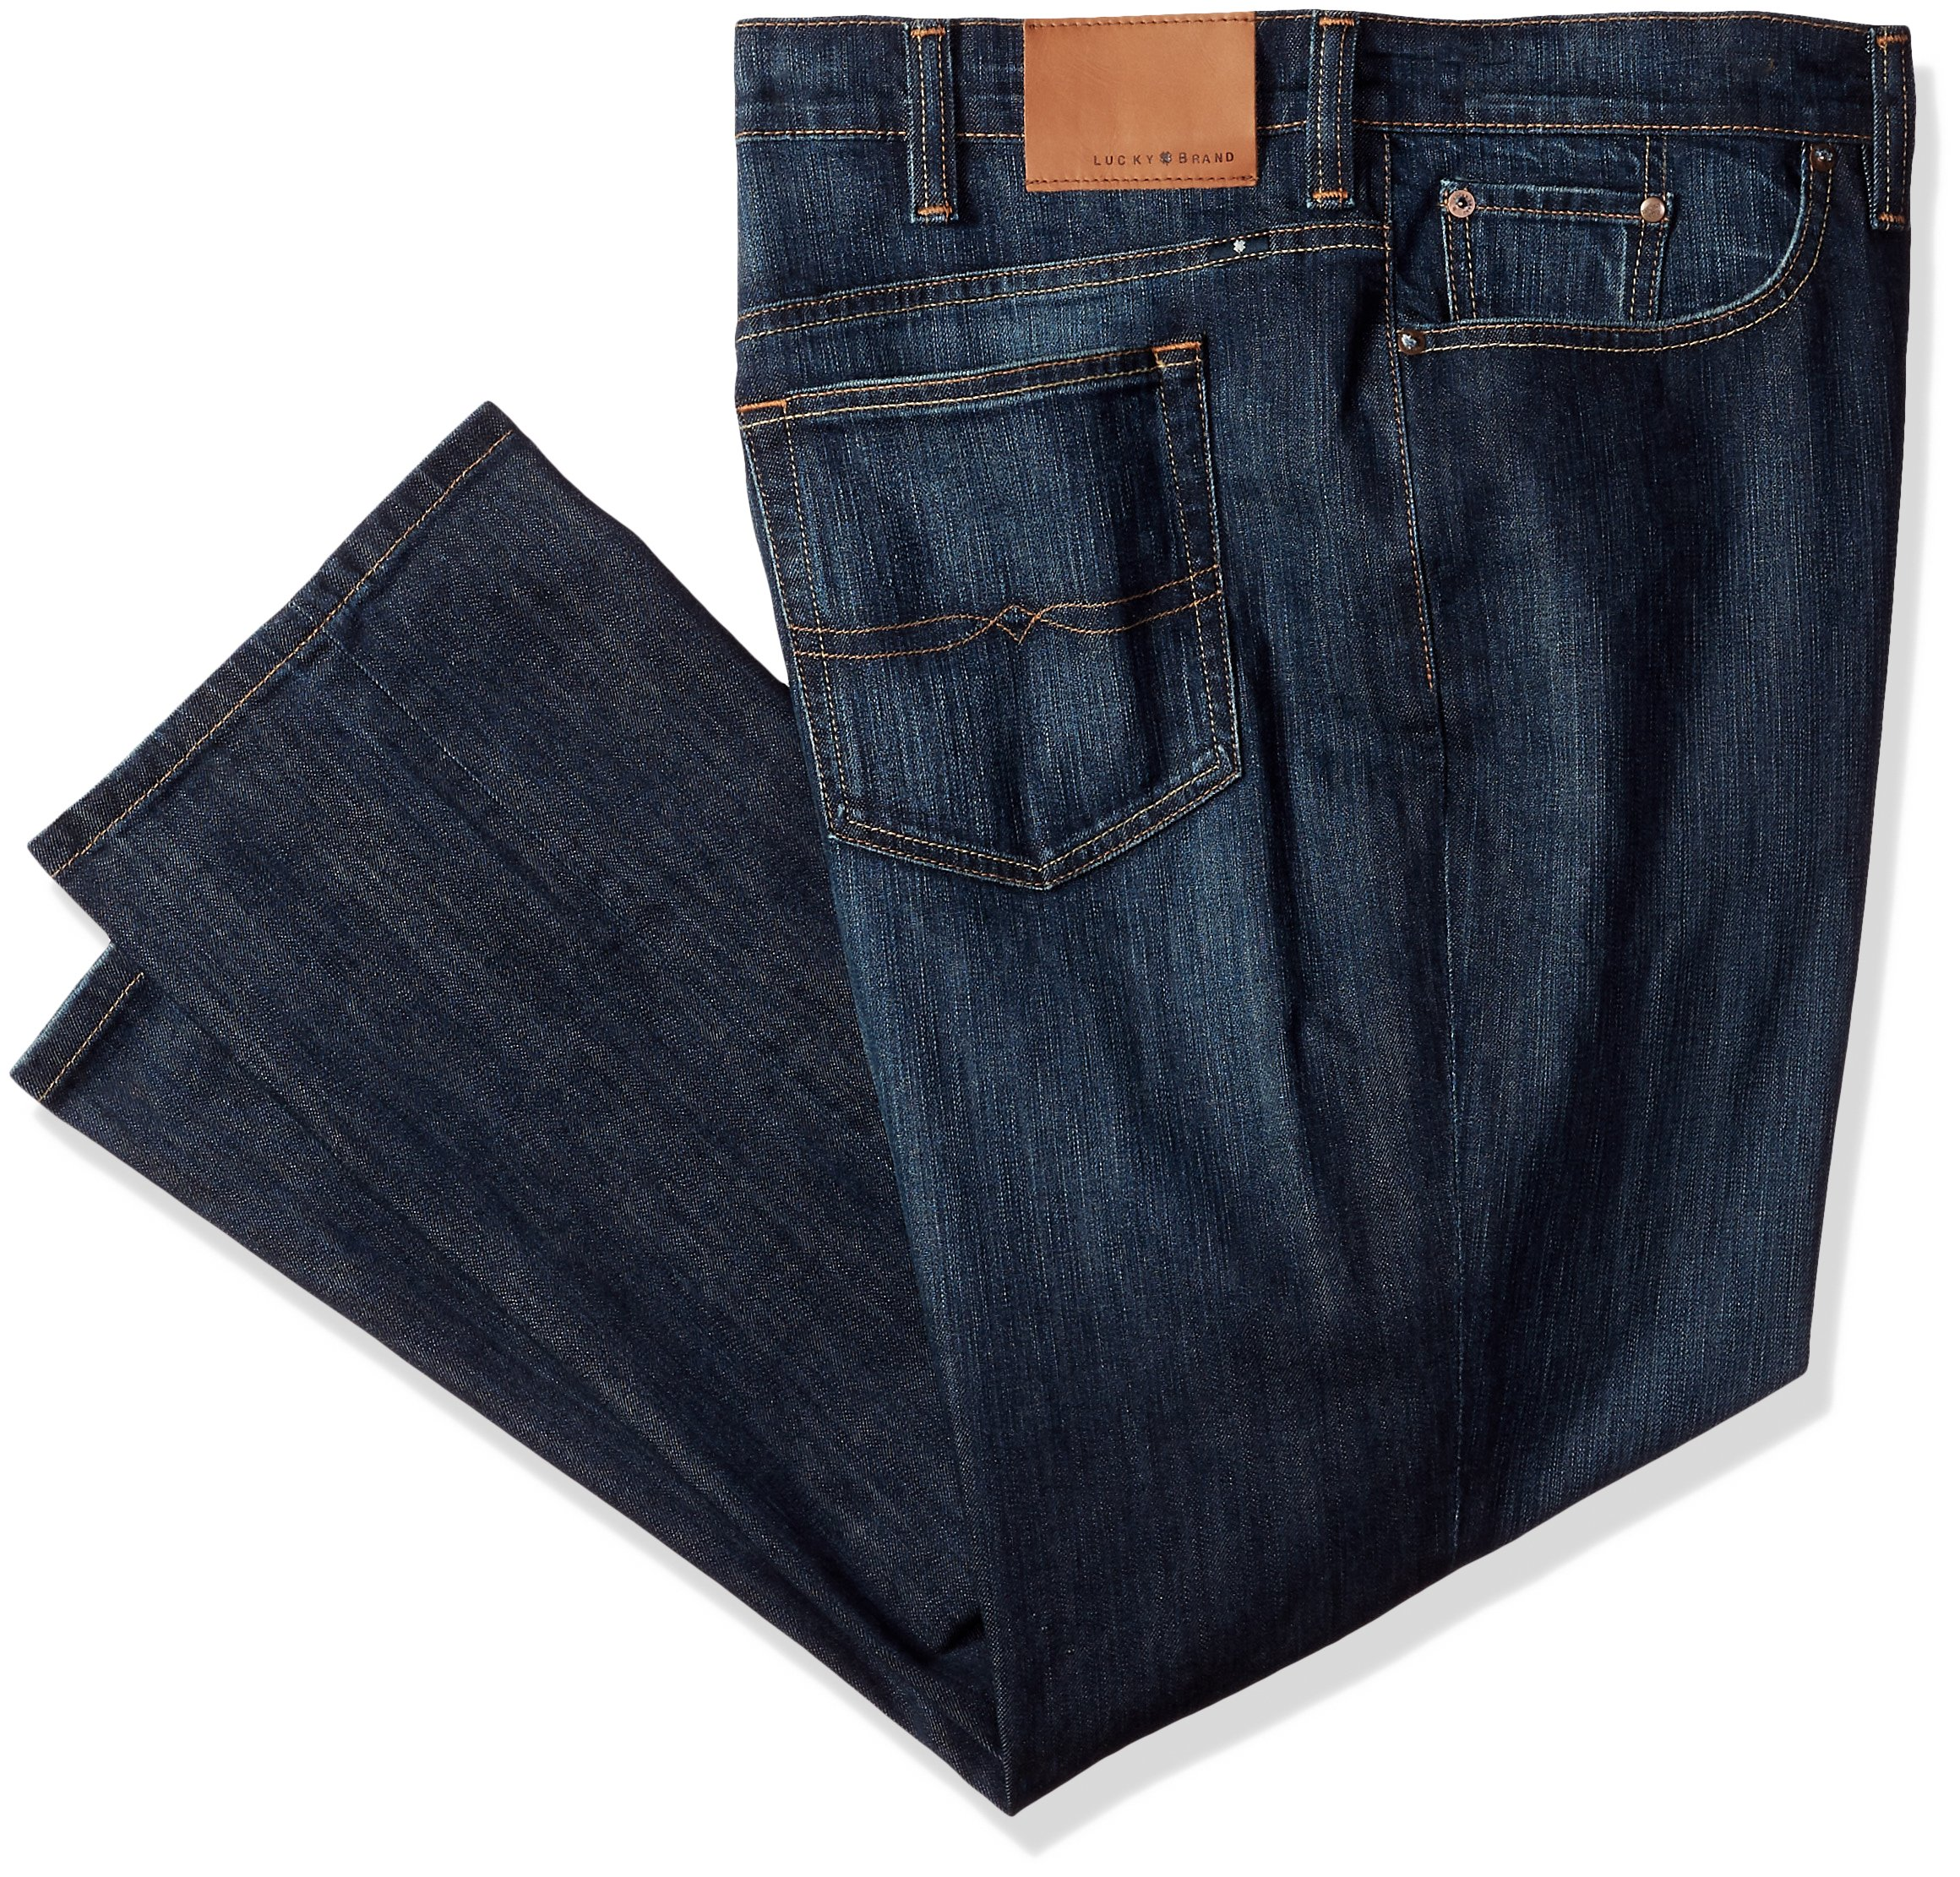 Lucky Brand Men's Big and Tall Big & Tall 329 Classic Straight Jean in Murrell, 46X30